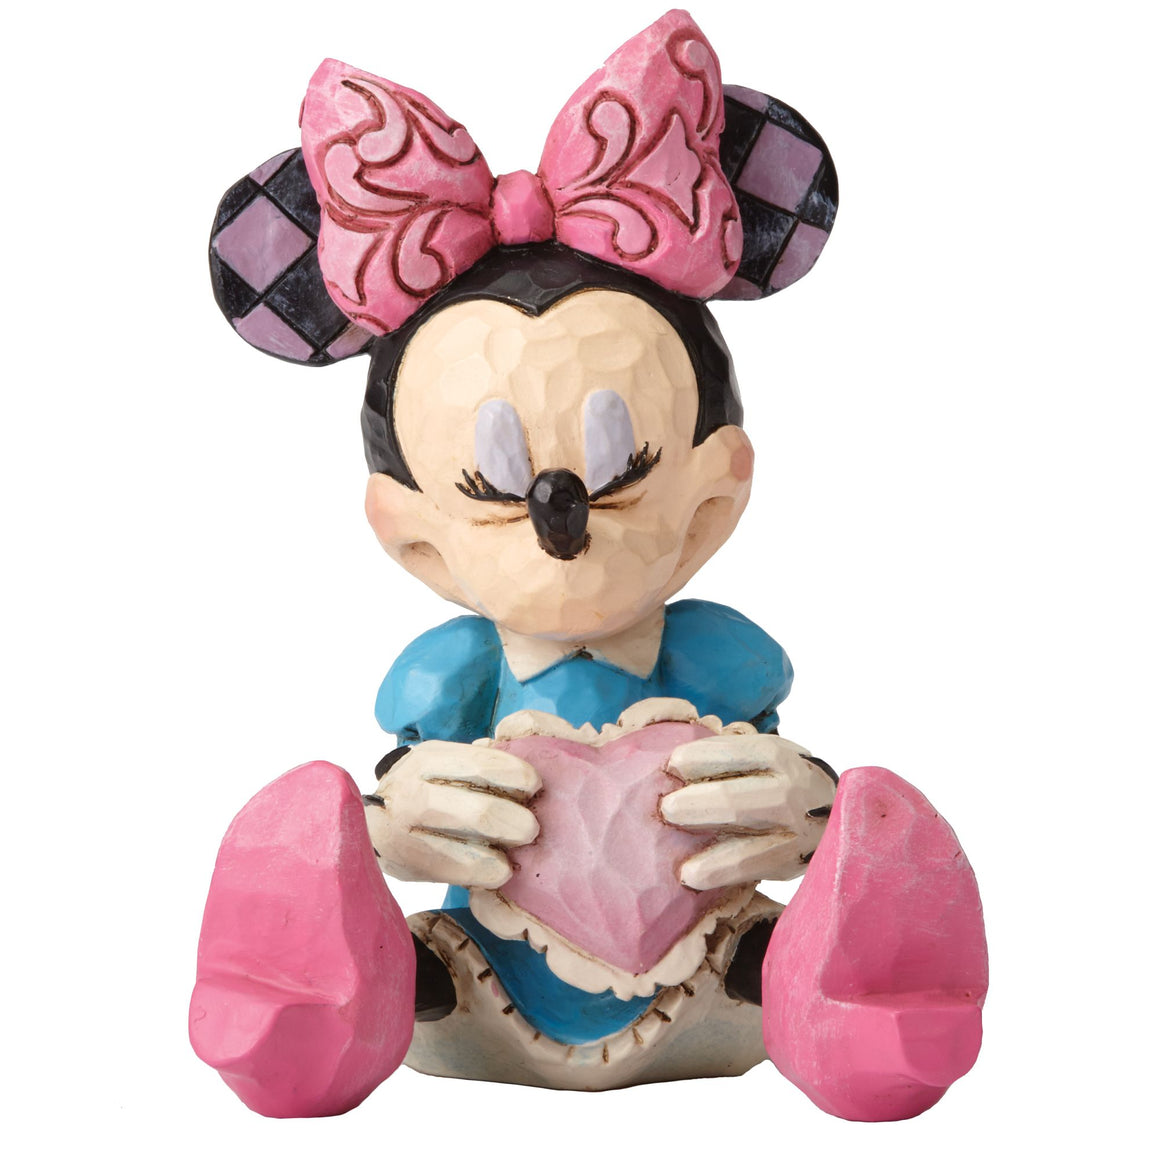 Disney Traditions Minnie Mouse with Heart Mini Figurine